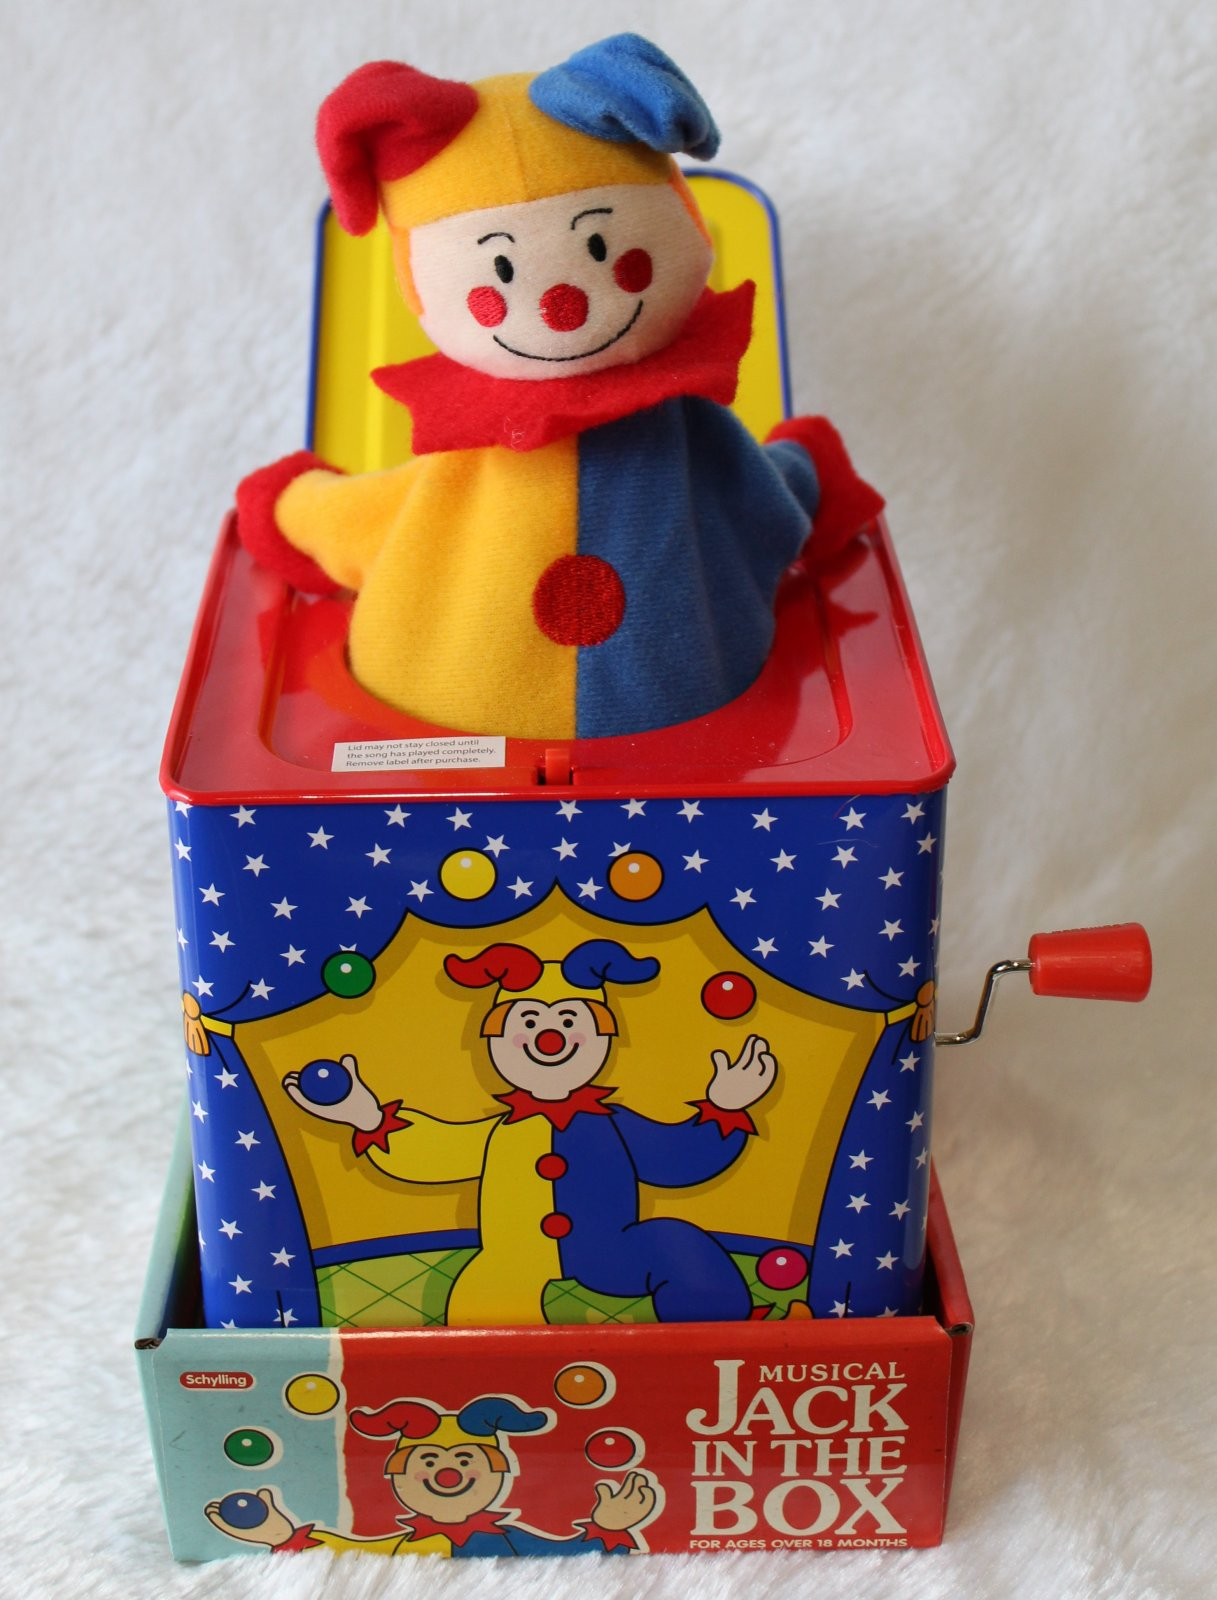 Musical Jack in the Box Toy